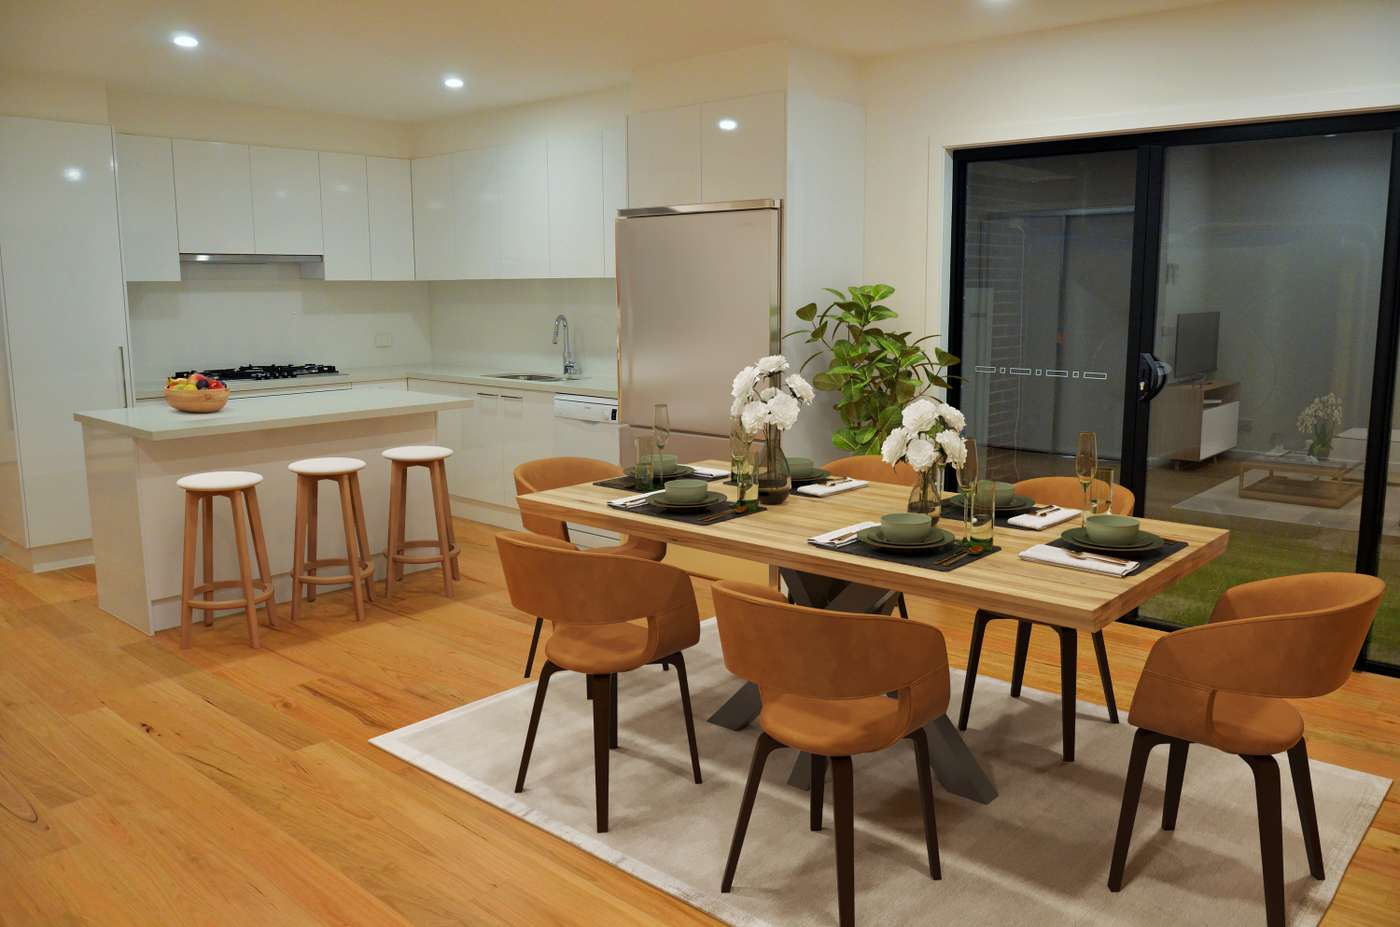 Main view of Homely townhouse listing, 1/12 Curie Av, Oak Park, VIC 3046